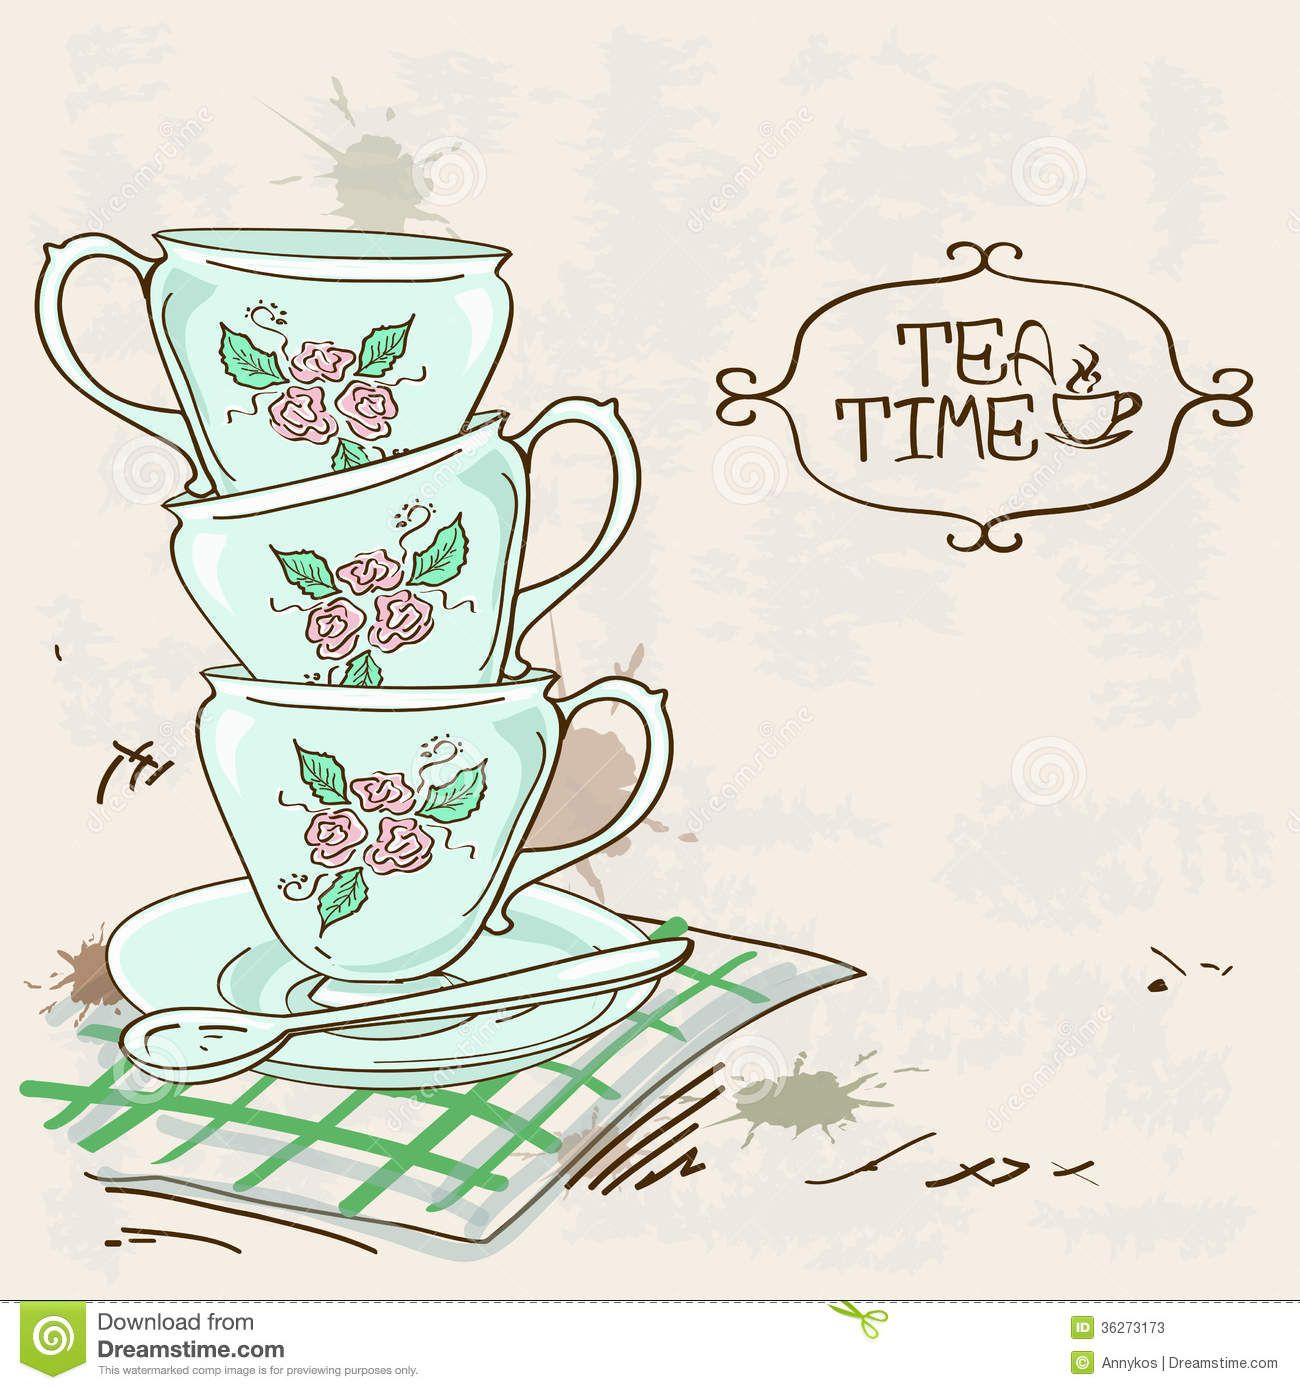 Vintage tea cup clipart background image black and white Pin by Kim Woo on tea time   Tea cups, Tea, Tea pots image black and white